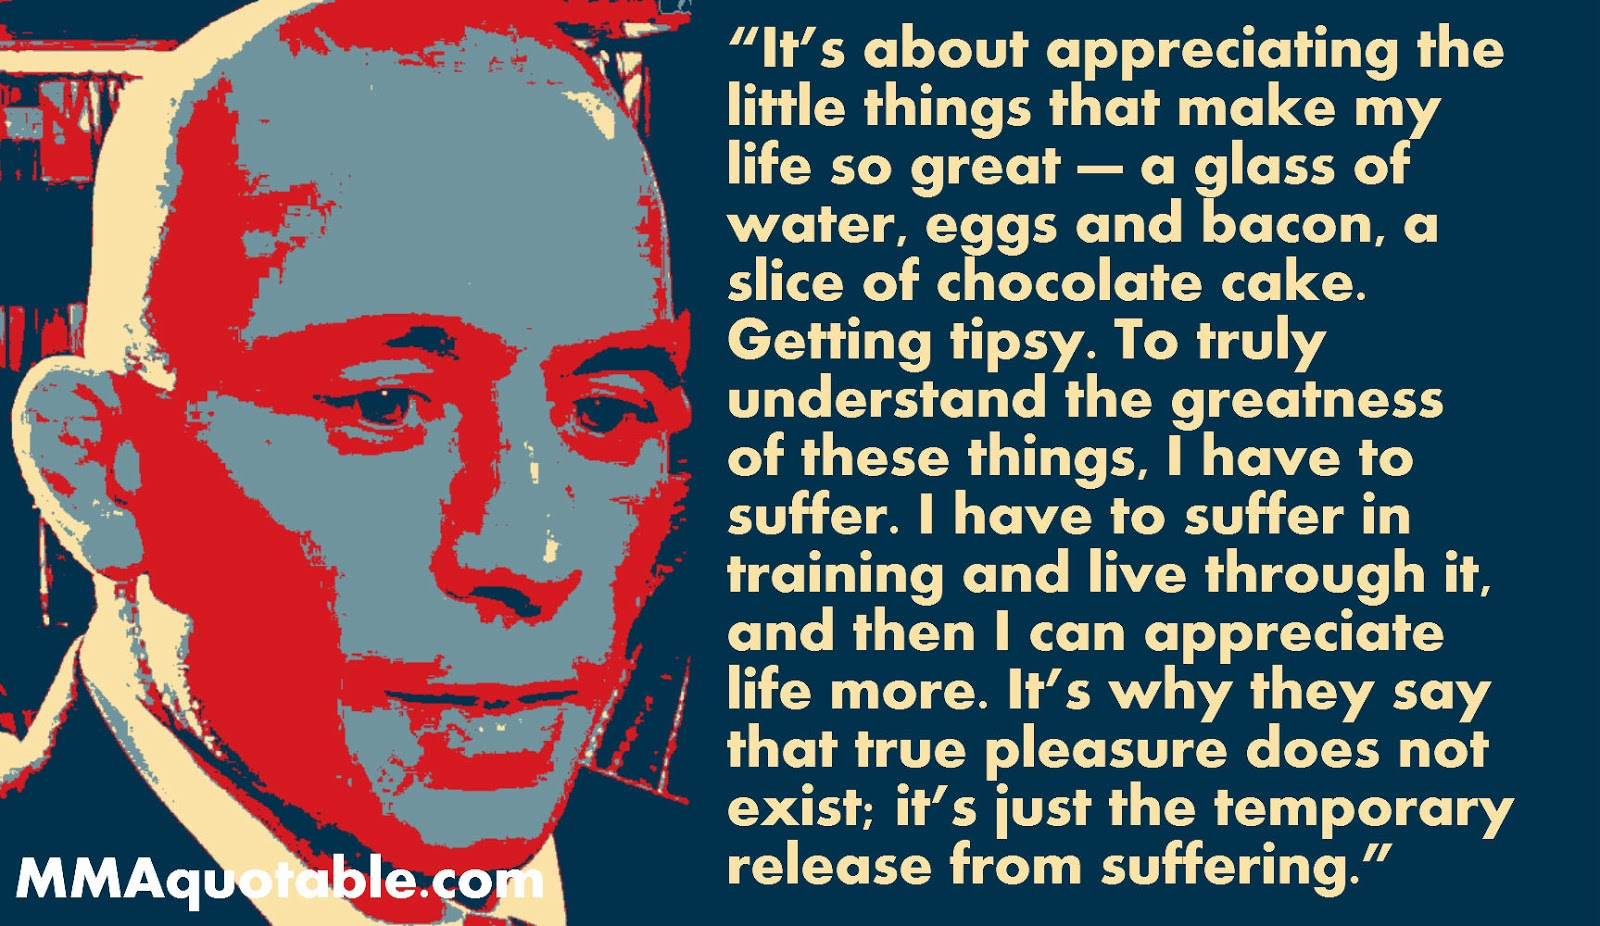 Quotes About Appreciating Life Motivational Quotes With Pictures Many Mma & Ufc Gsp On